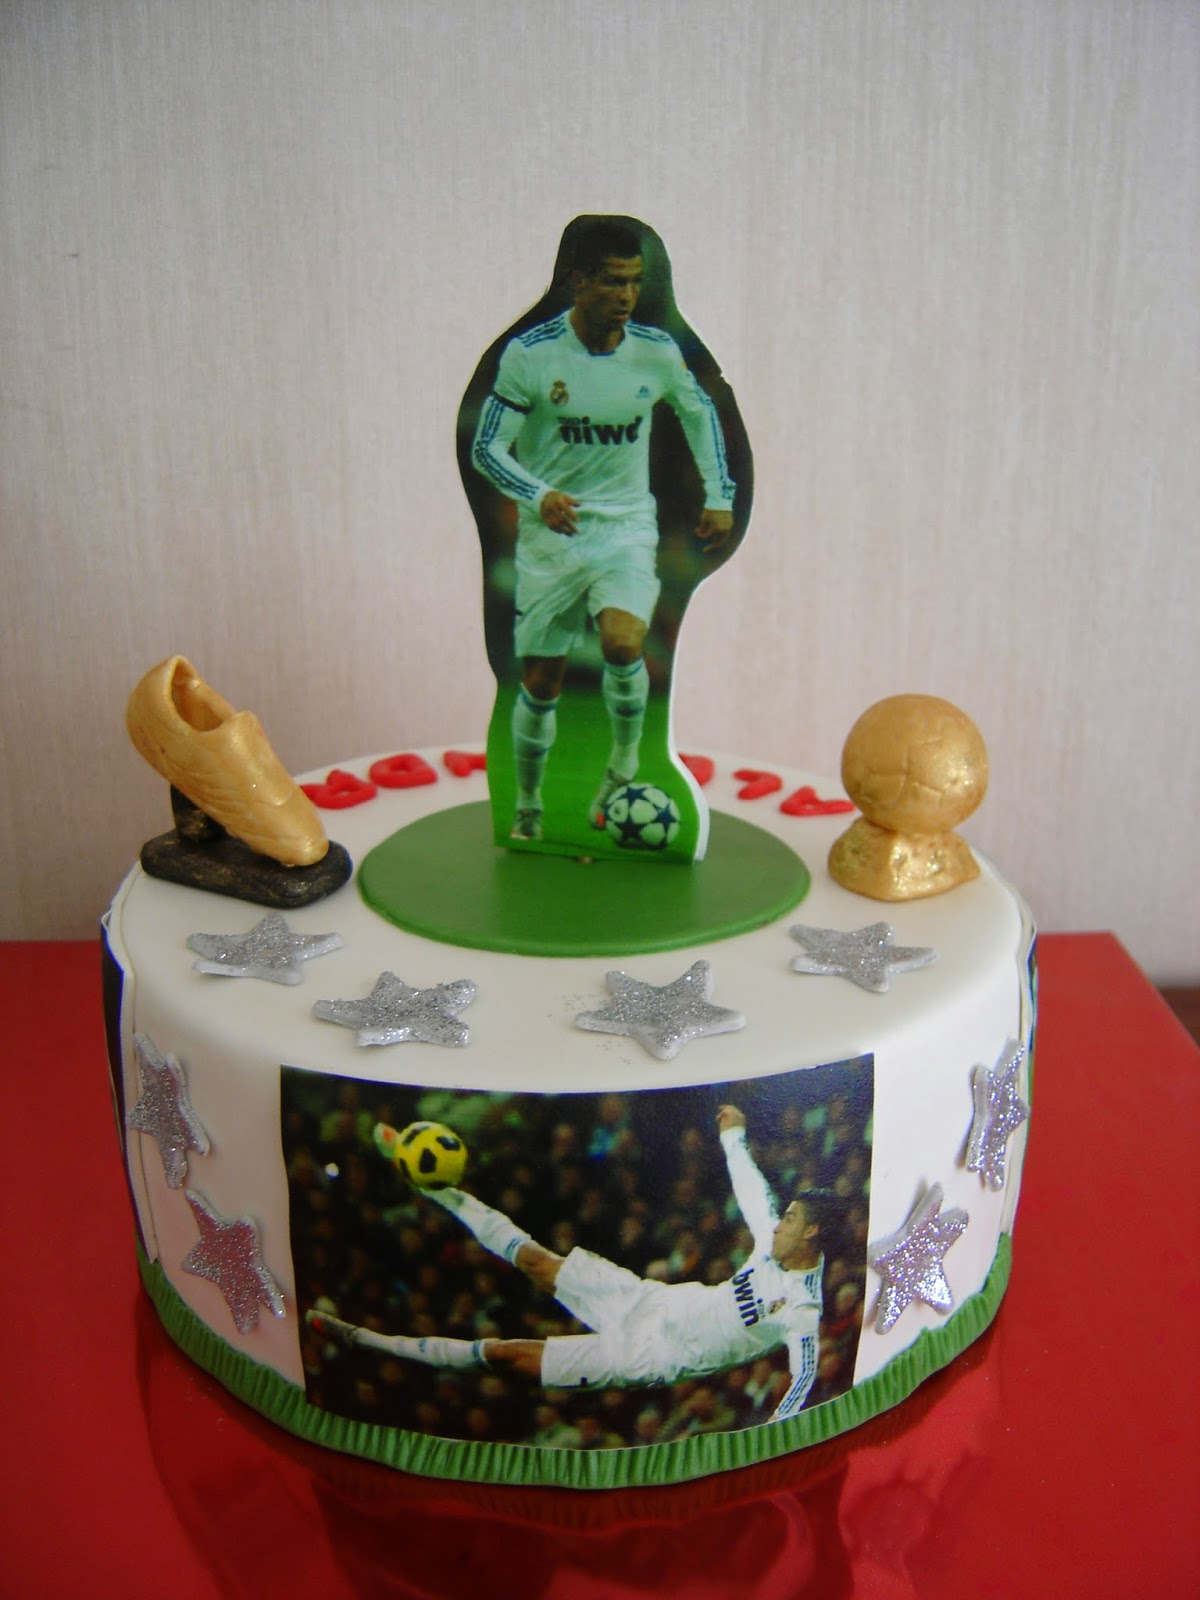 D 39 azucar tarta cristiano ronaldo real madrid for Correo real madrid